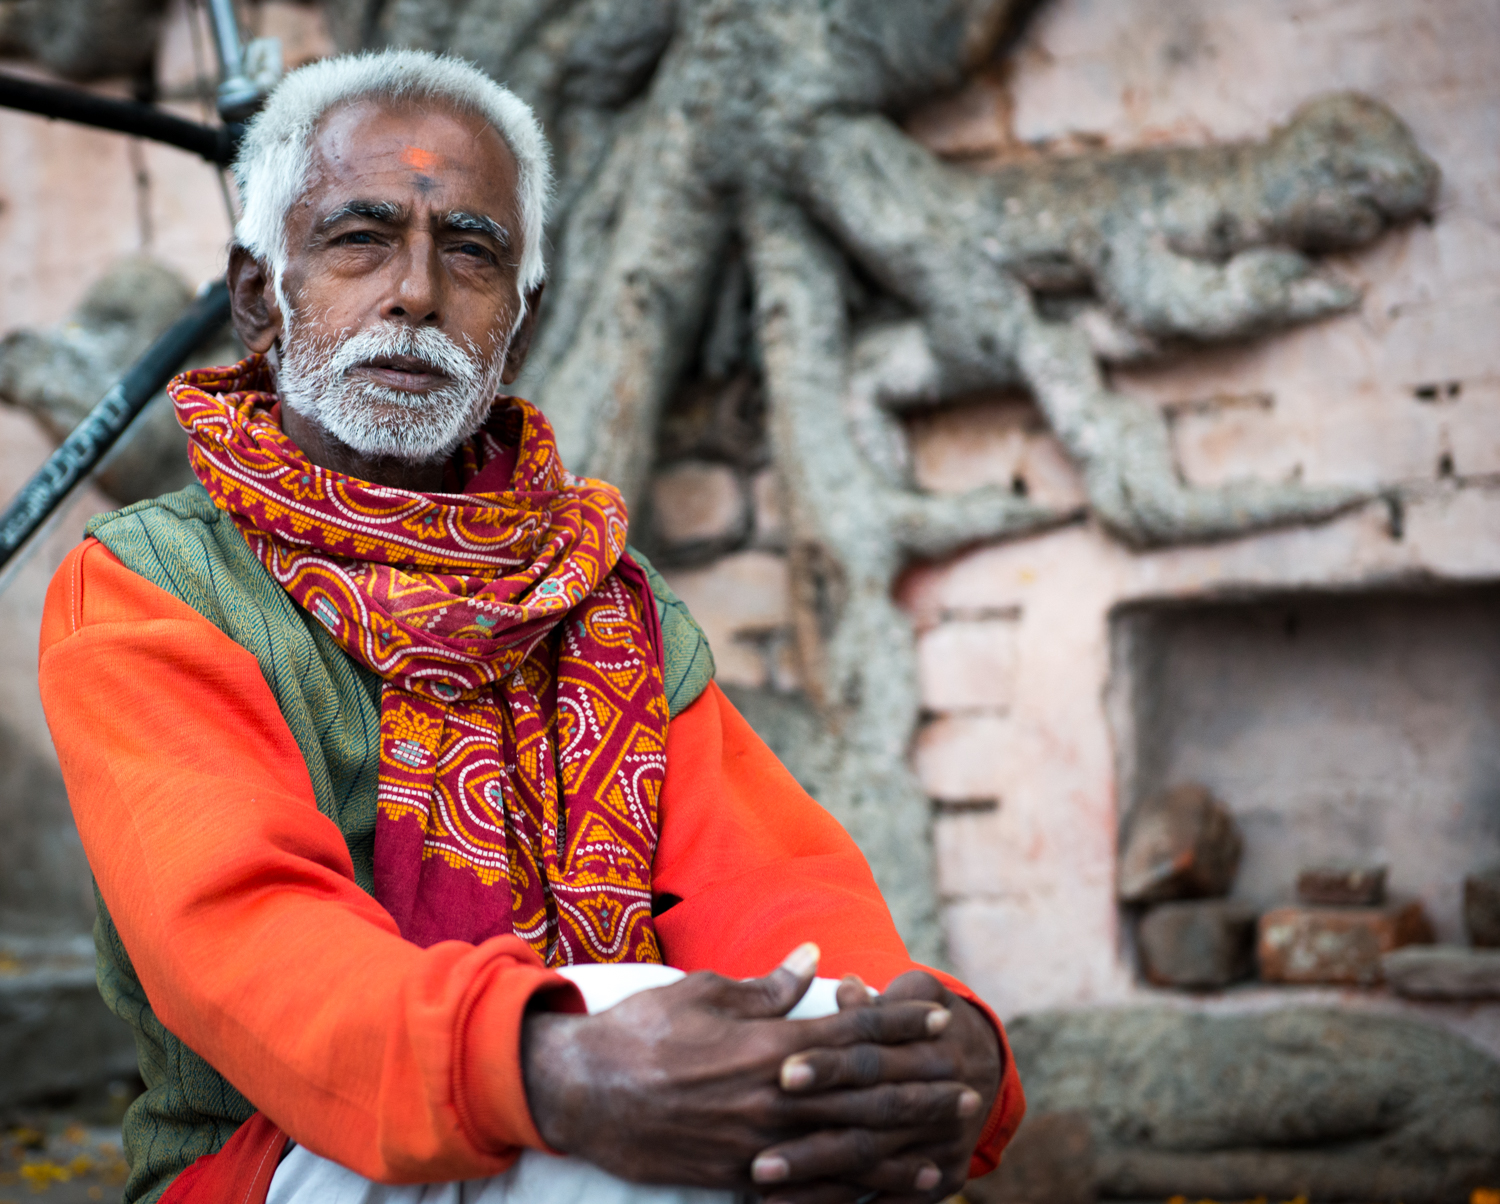 A man poses for a picture - Varanasi, India.